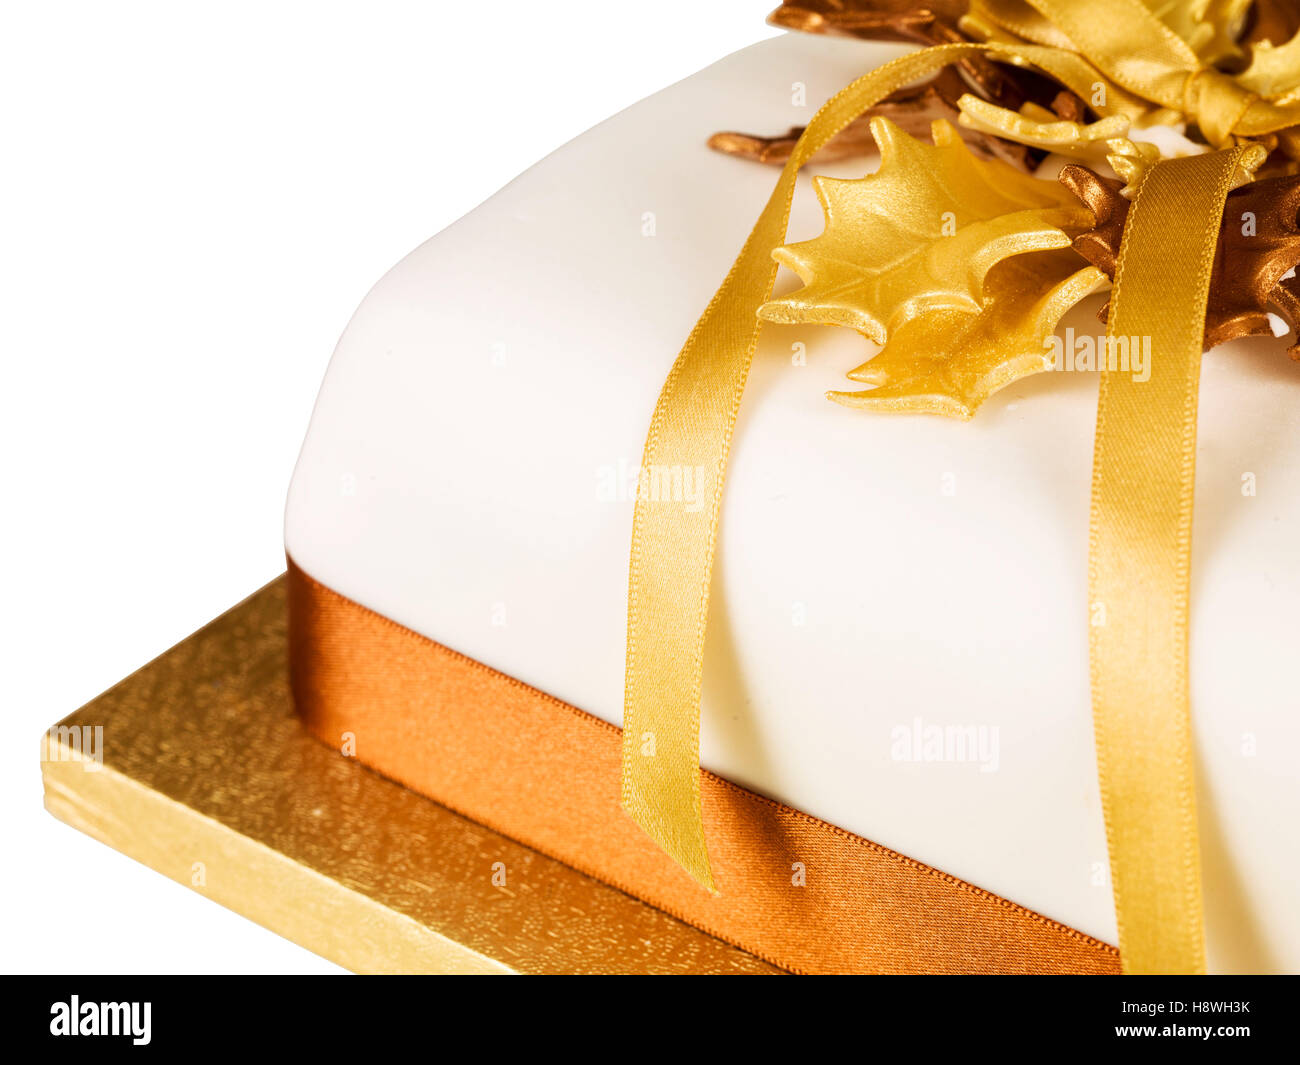 Traditional Iced and Decorated Rich Fruit Christmas Cake - Stock Image